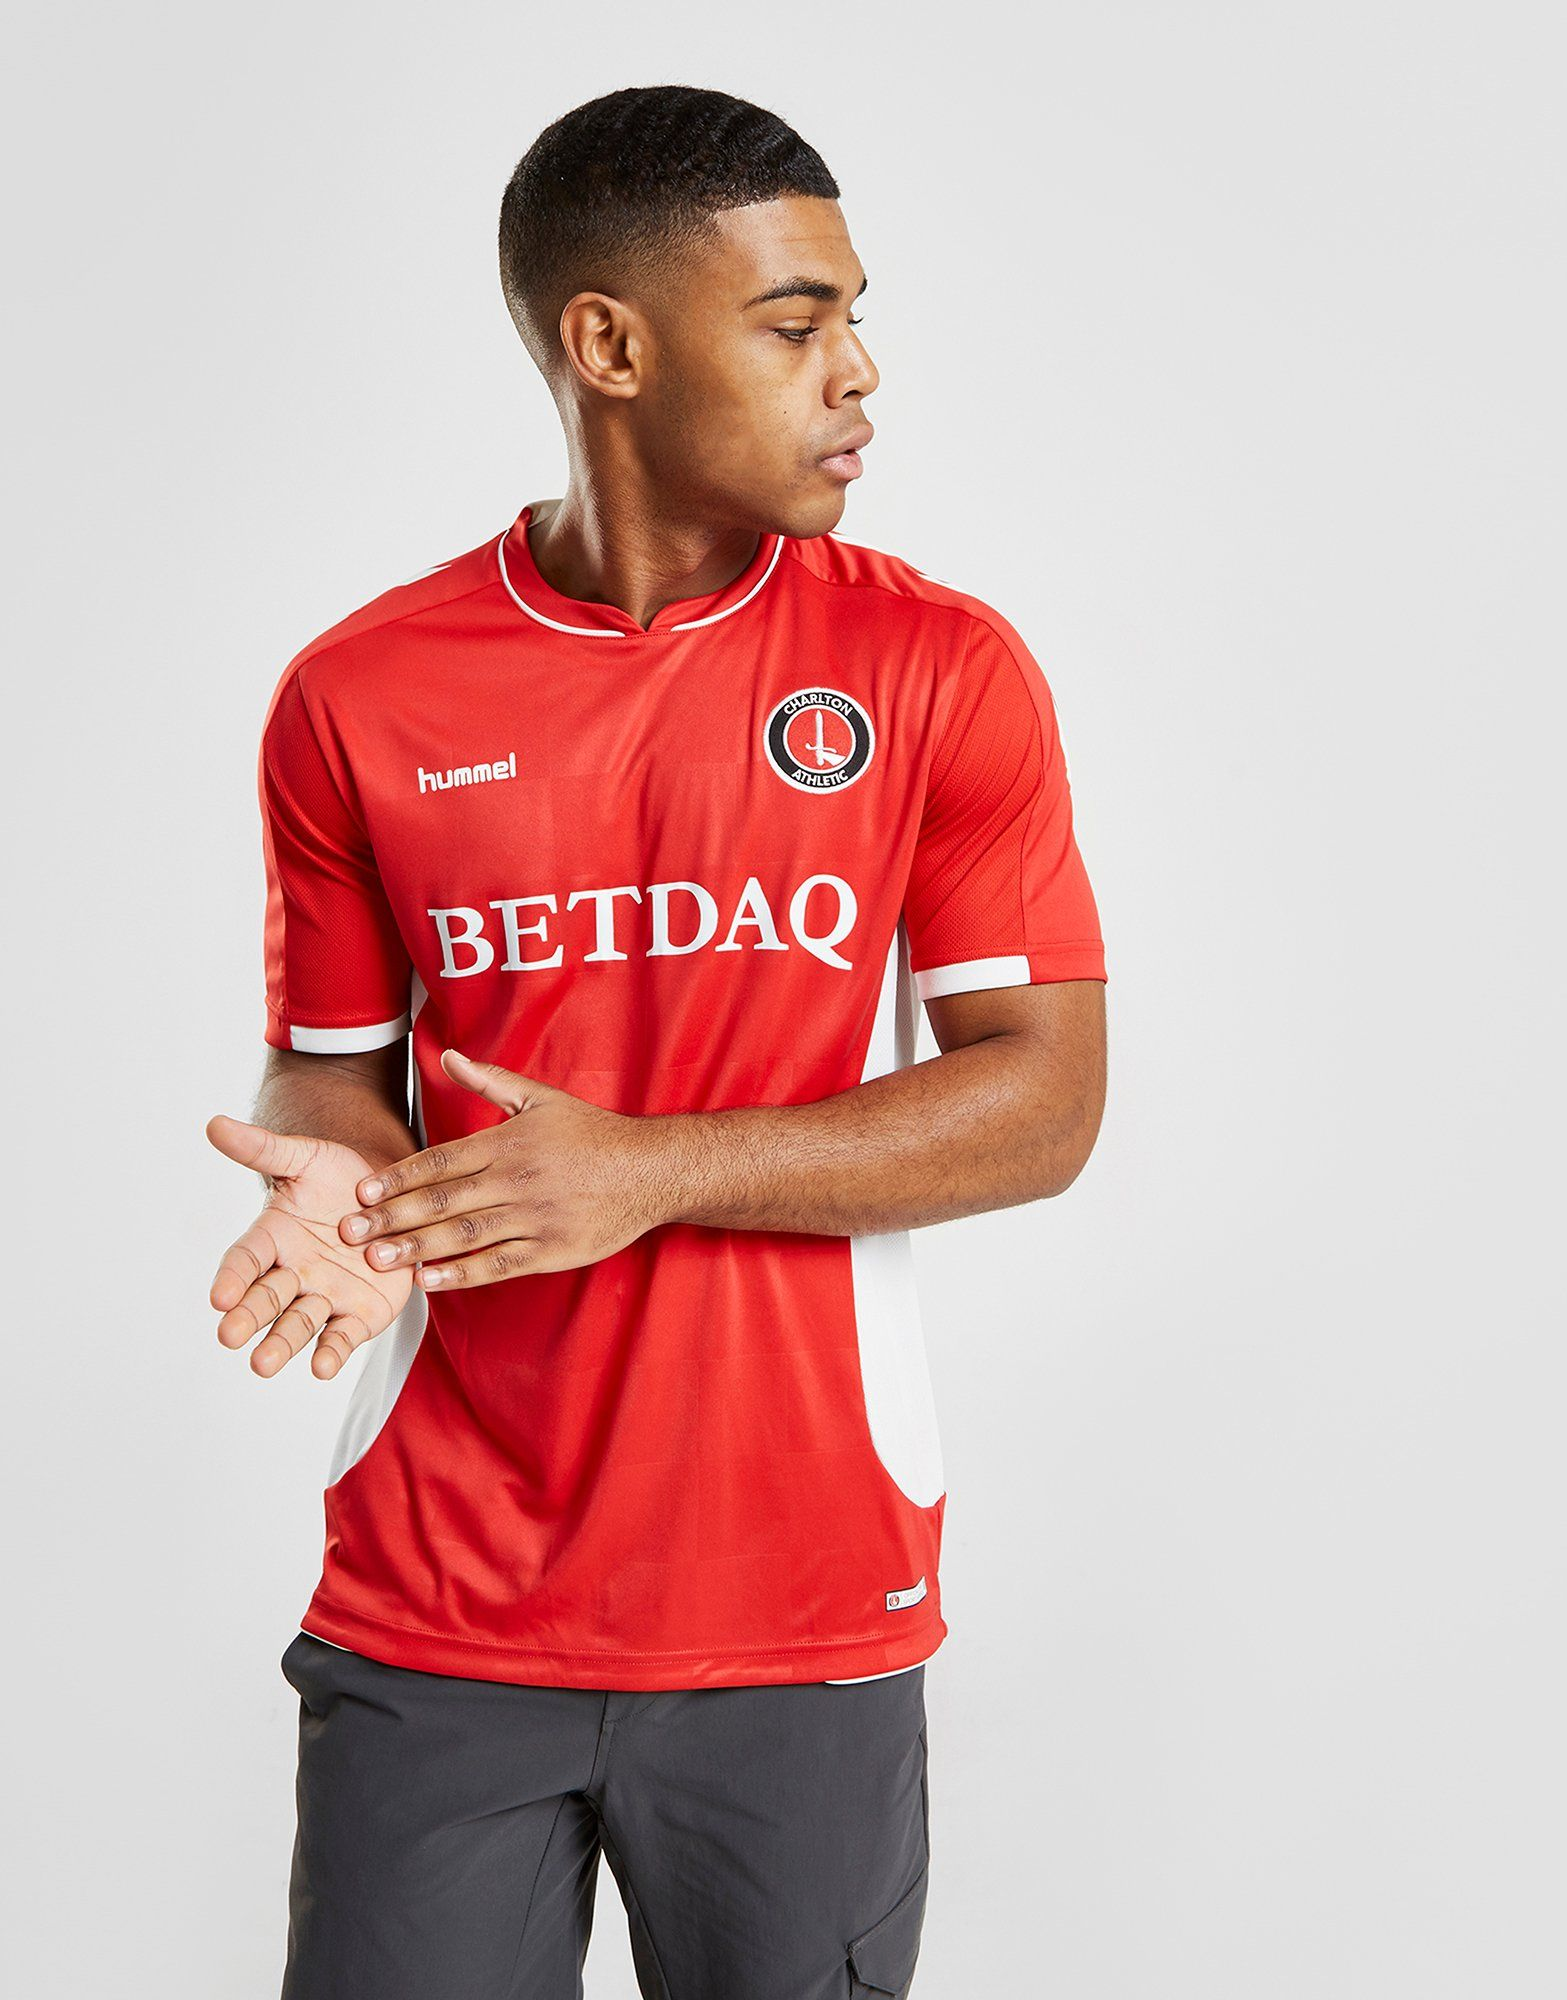 Hummel Charlton Athletic FC 2018/19 Home Shirt